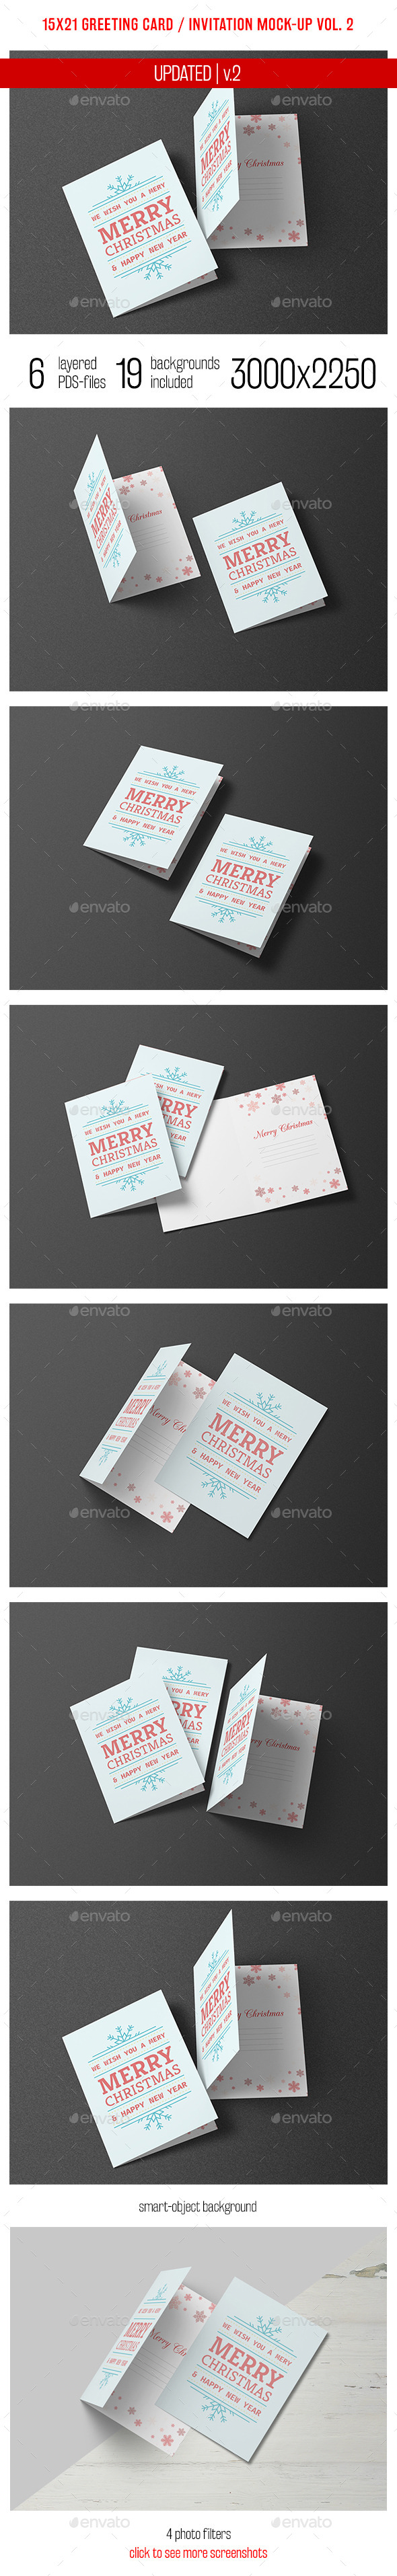 Greeting Card and Invitation Mockup Vol. 2 - Miscellaneous Print